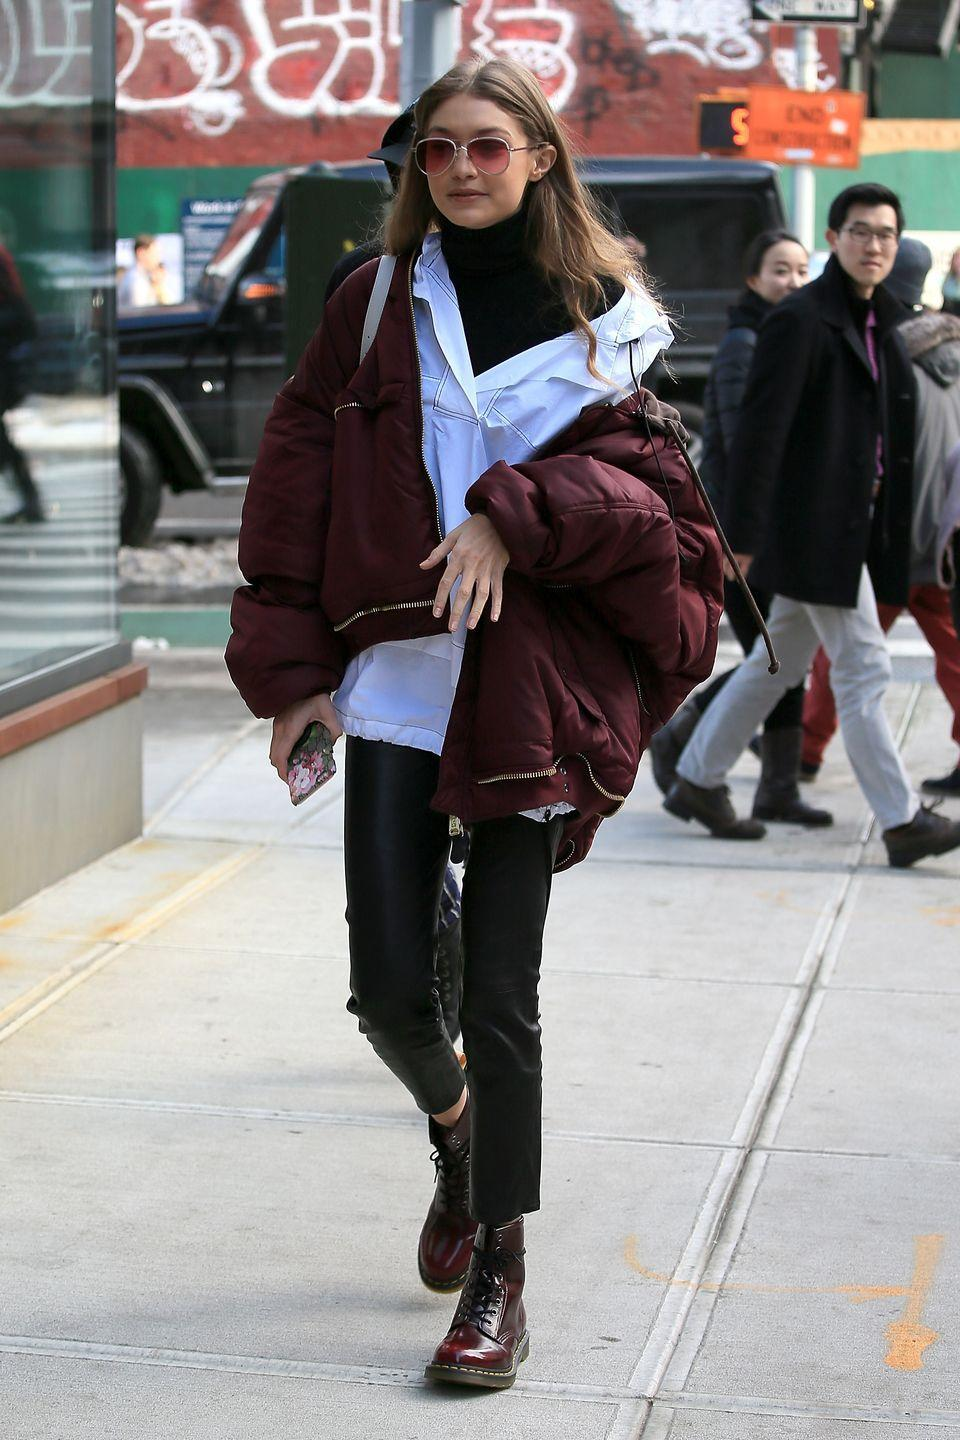 <p>Wearing off-the-shoulder coats is a fave celeb style trick. Gigi rocked the trend times two, with an oversized white top hanging off her shoulder, layered under a marshmallow coat that's also off-the-shoulder. </p>